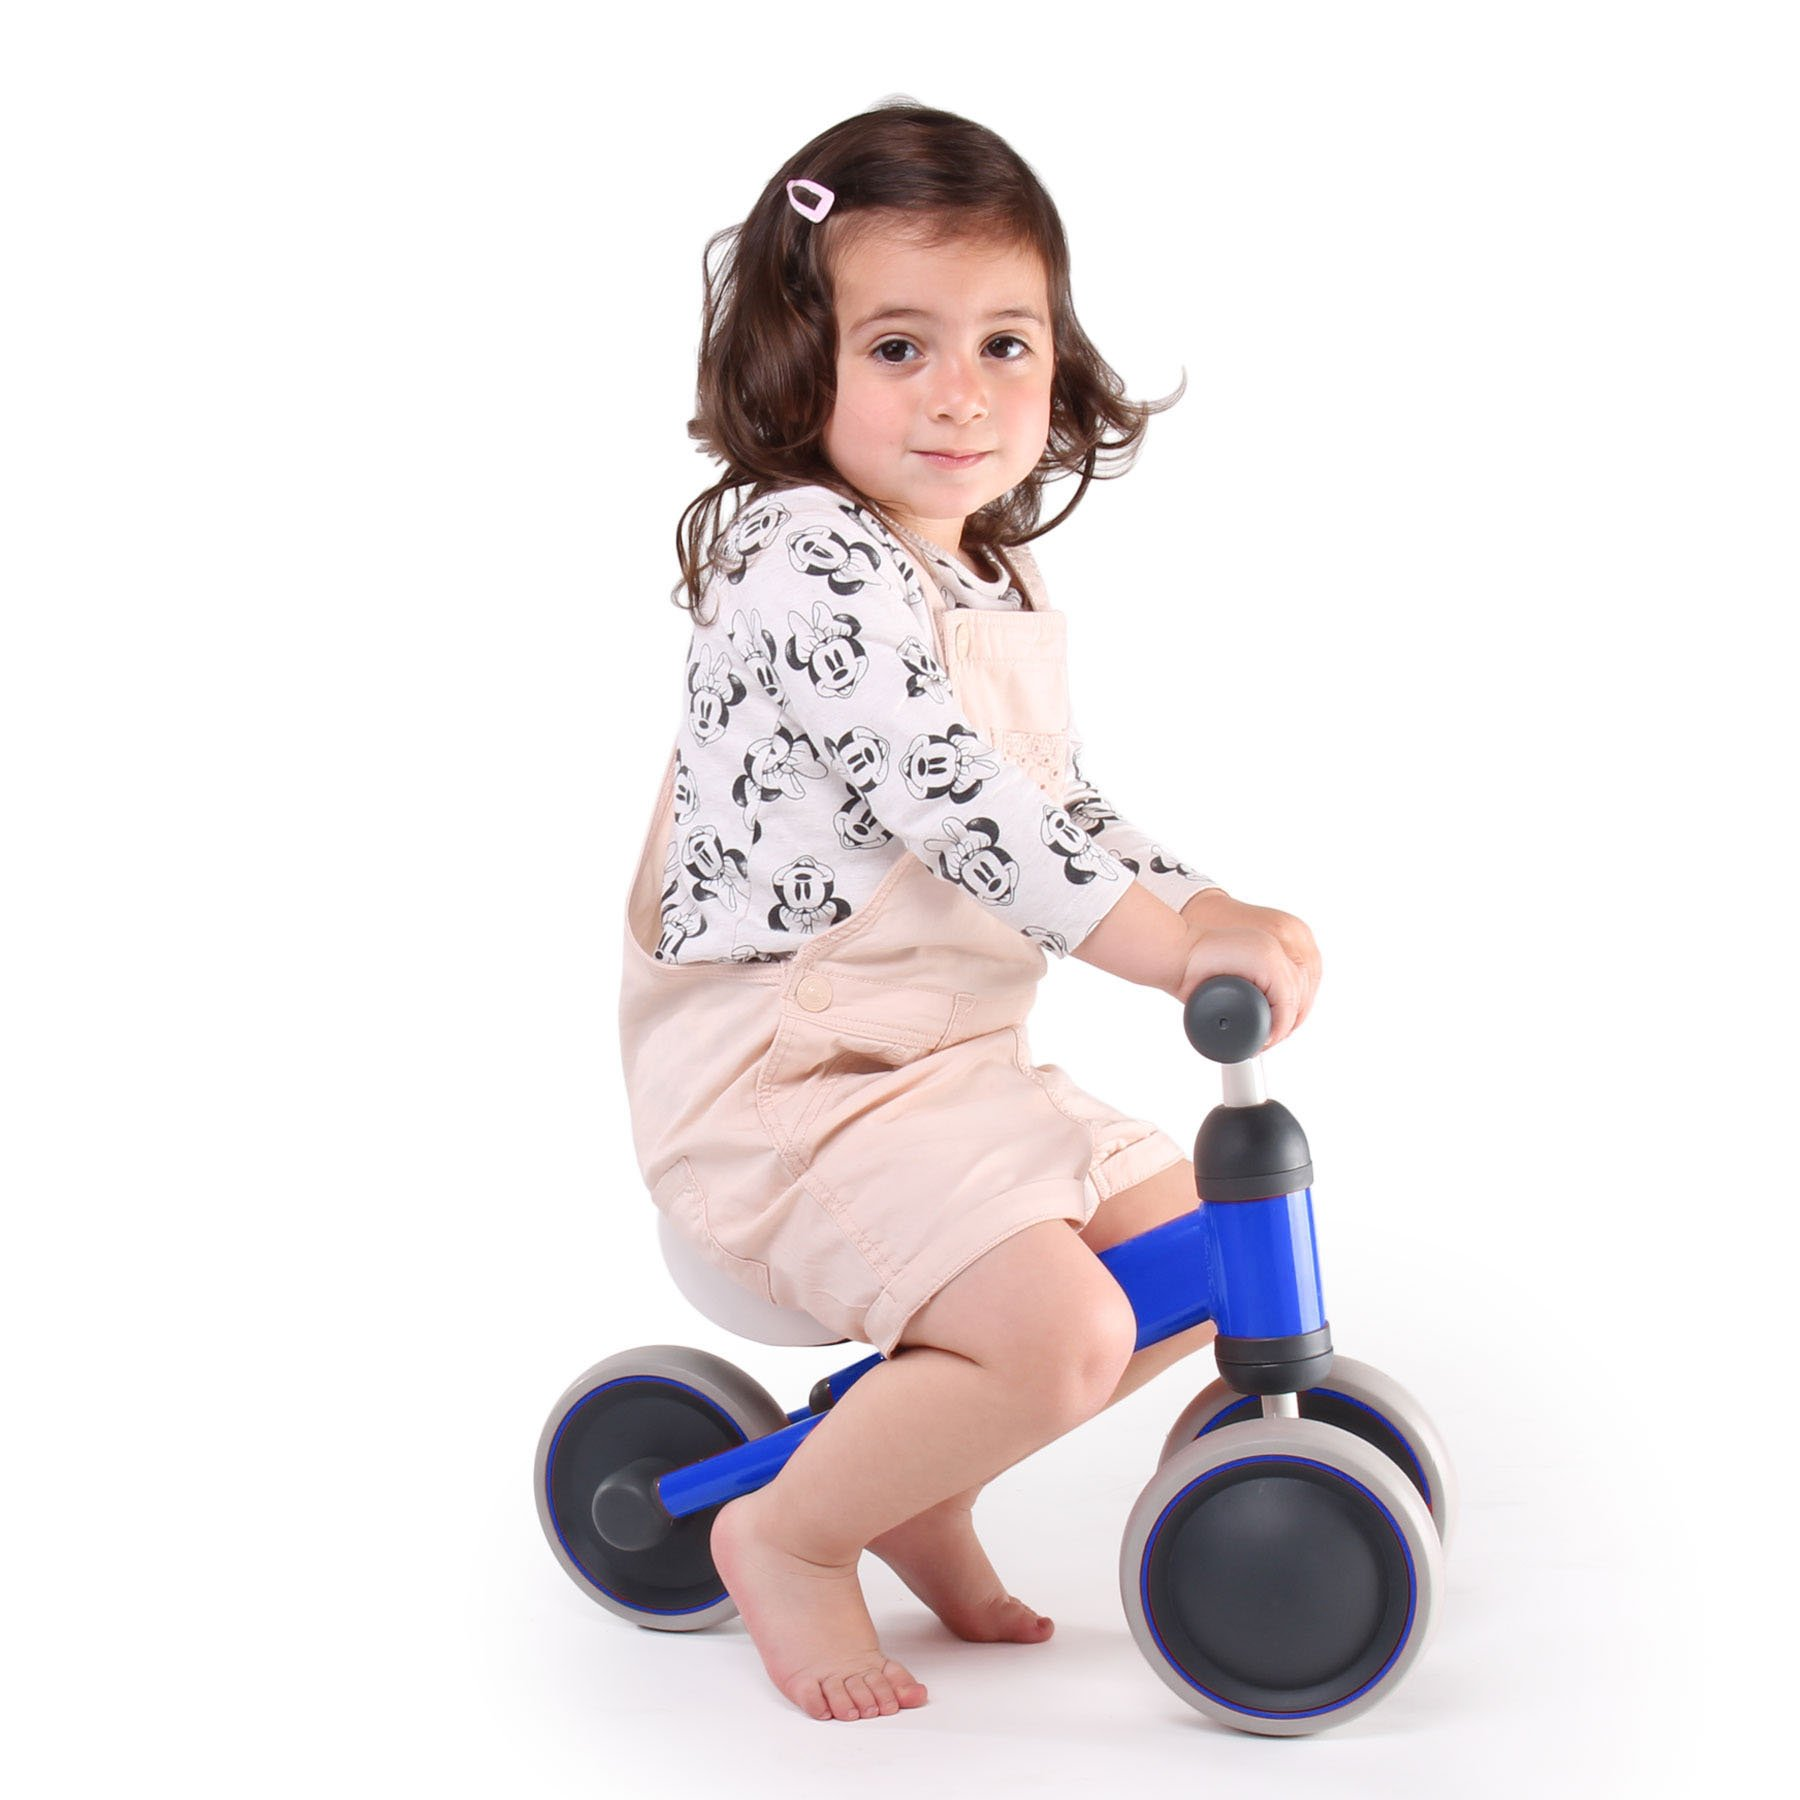 YesIndeed.. Baby Balance Bike, Mini Bike, Bicycle for children, 10-28 Months Toddler Tricycle Learn to Walk and Keep Balance. Boys and Girls Blue and Red. 4 YEARS WARRANTY